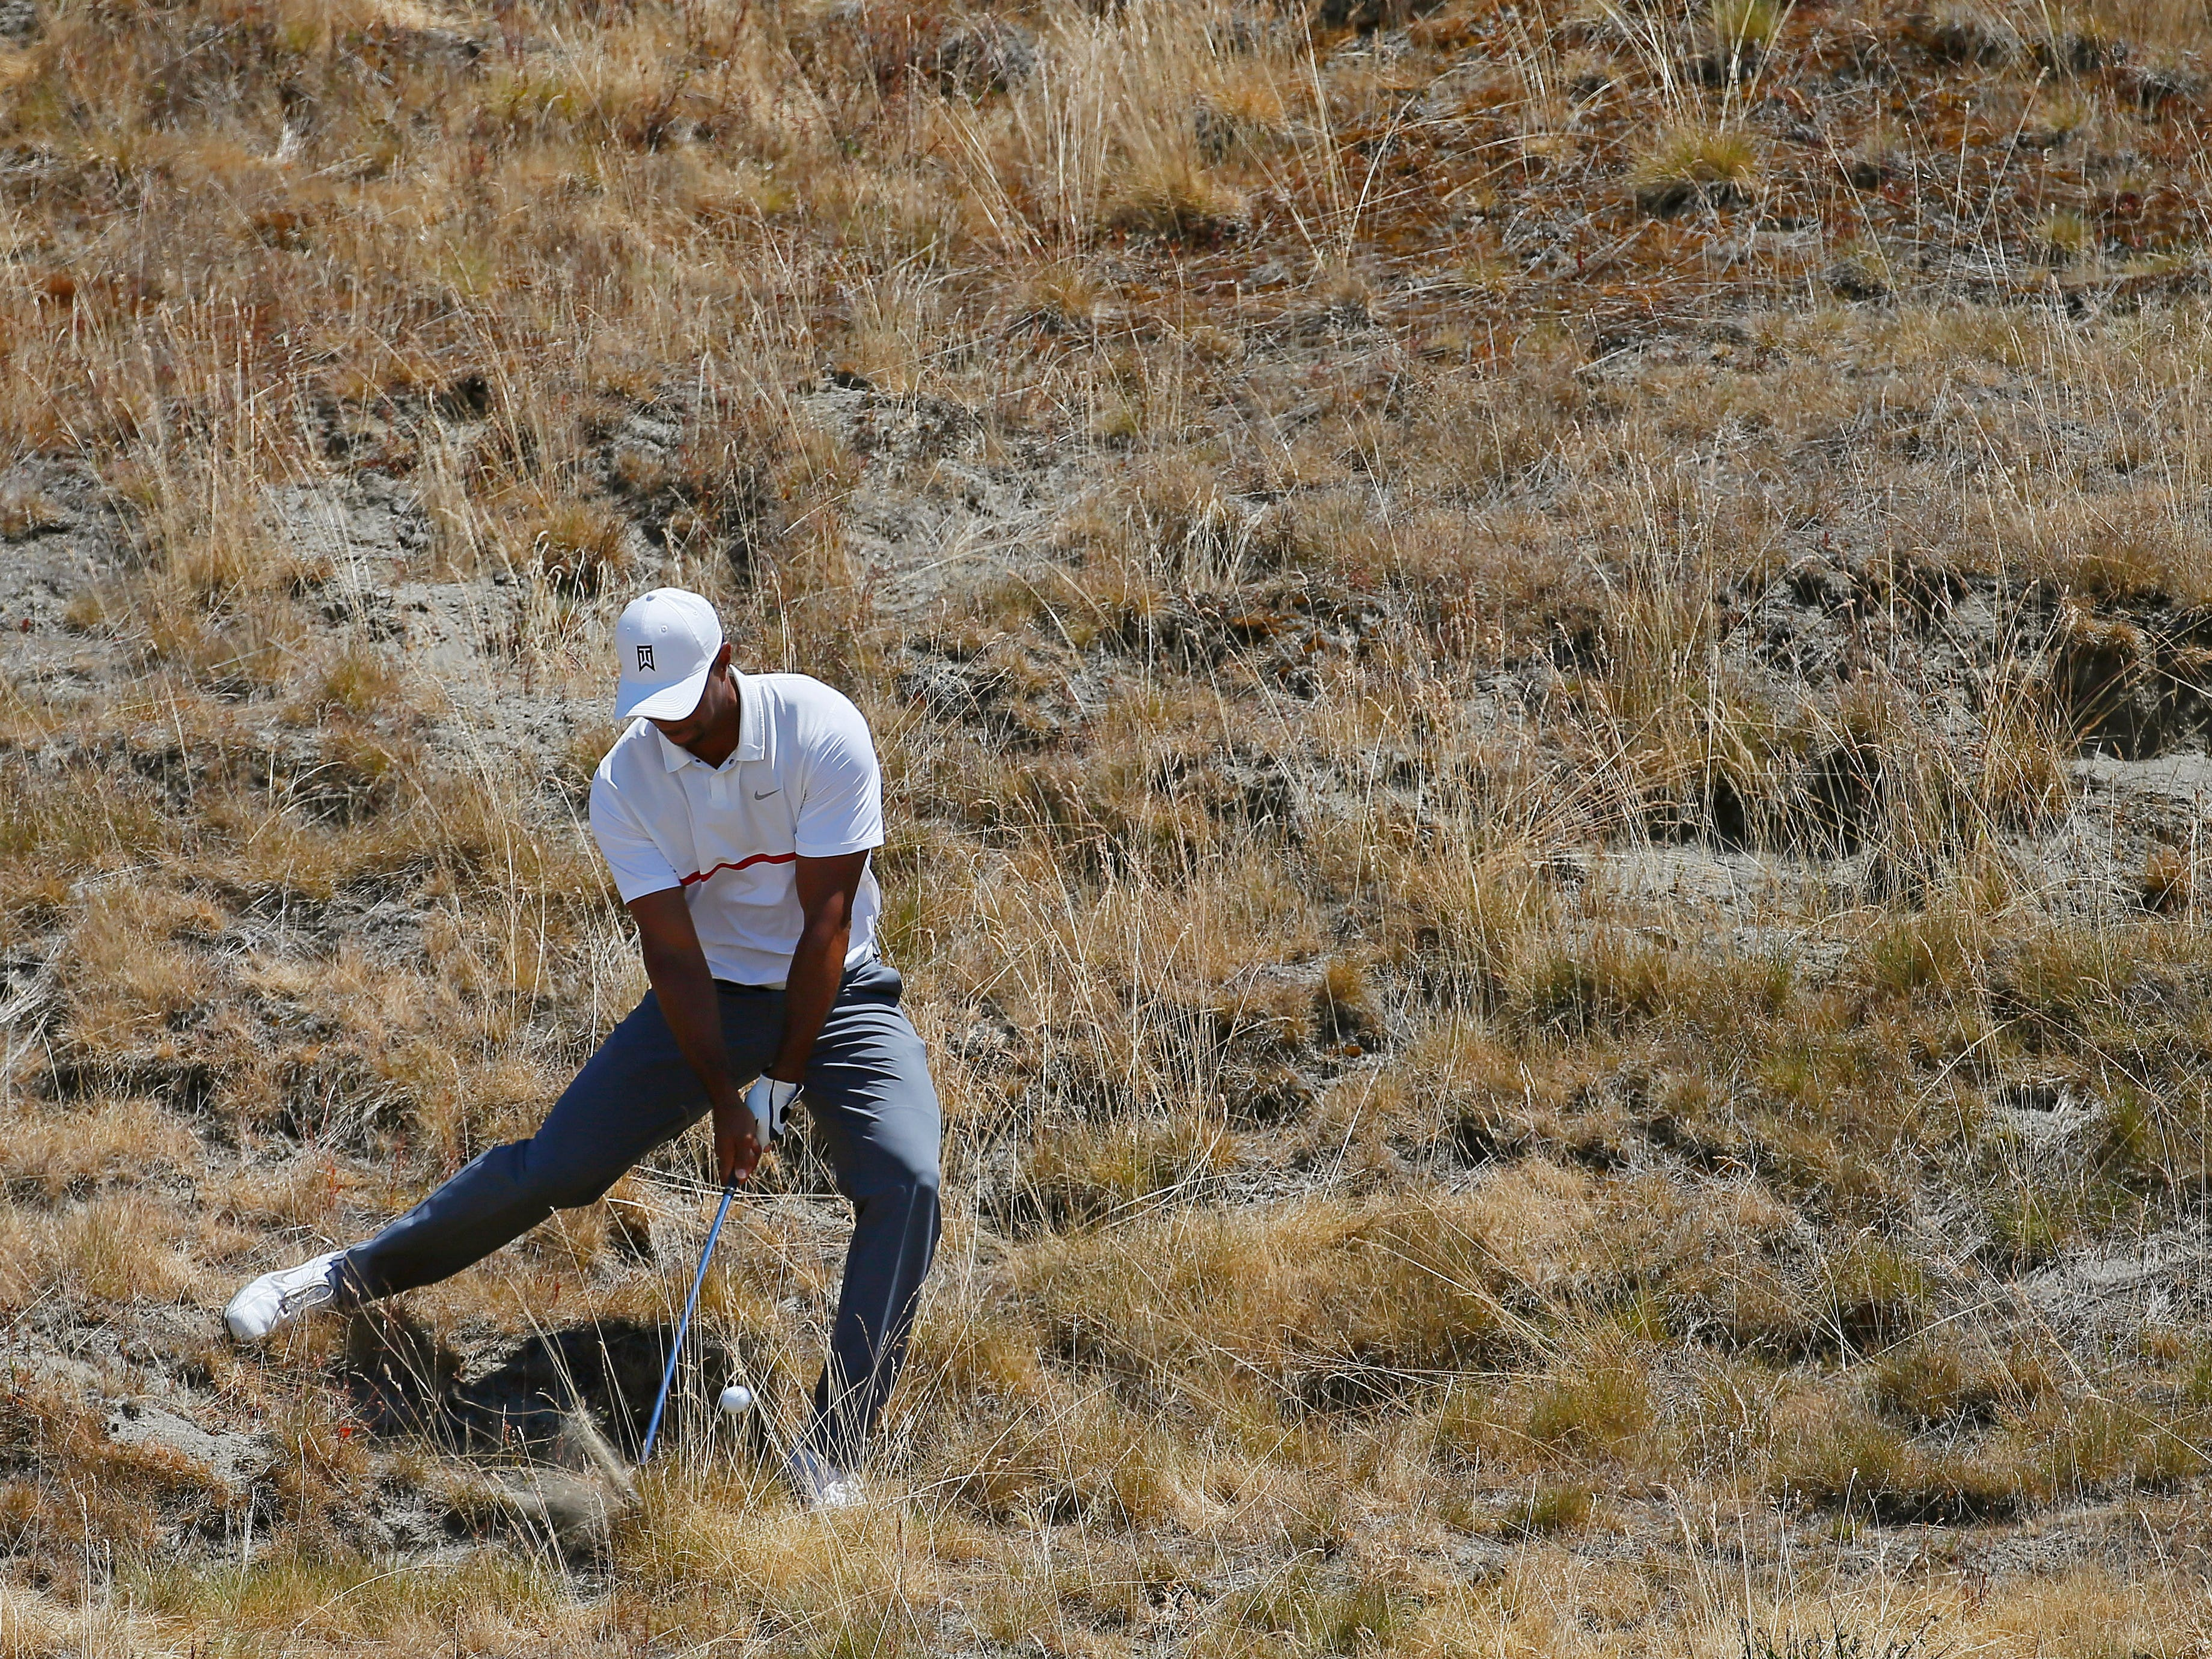 Tiger Woods hits out of the tall fescue grass on the eighth hole during the second round of the U.S. Open golf tournament at Chambers Bay on Friday, June 19, 2015 in University Place, Wash. (AP Photo/Matt York)